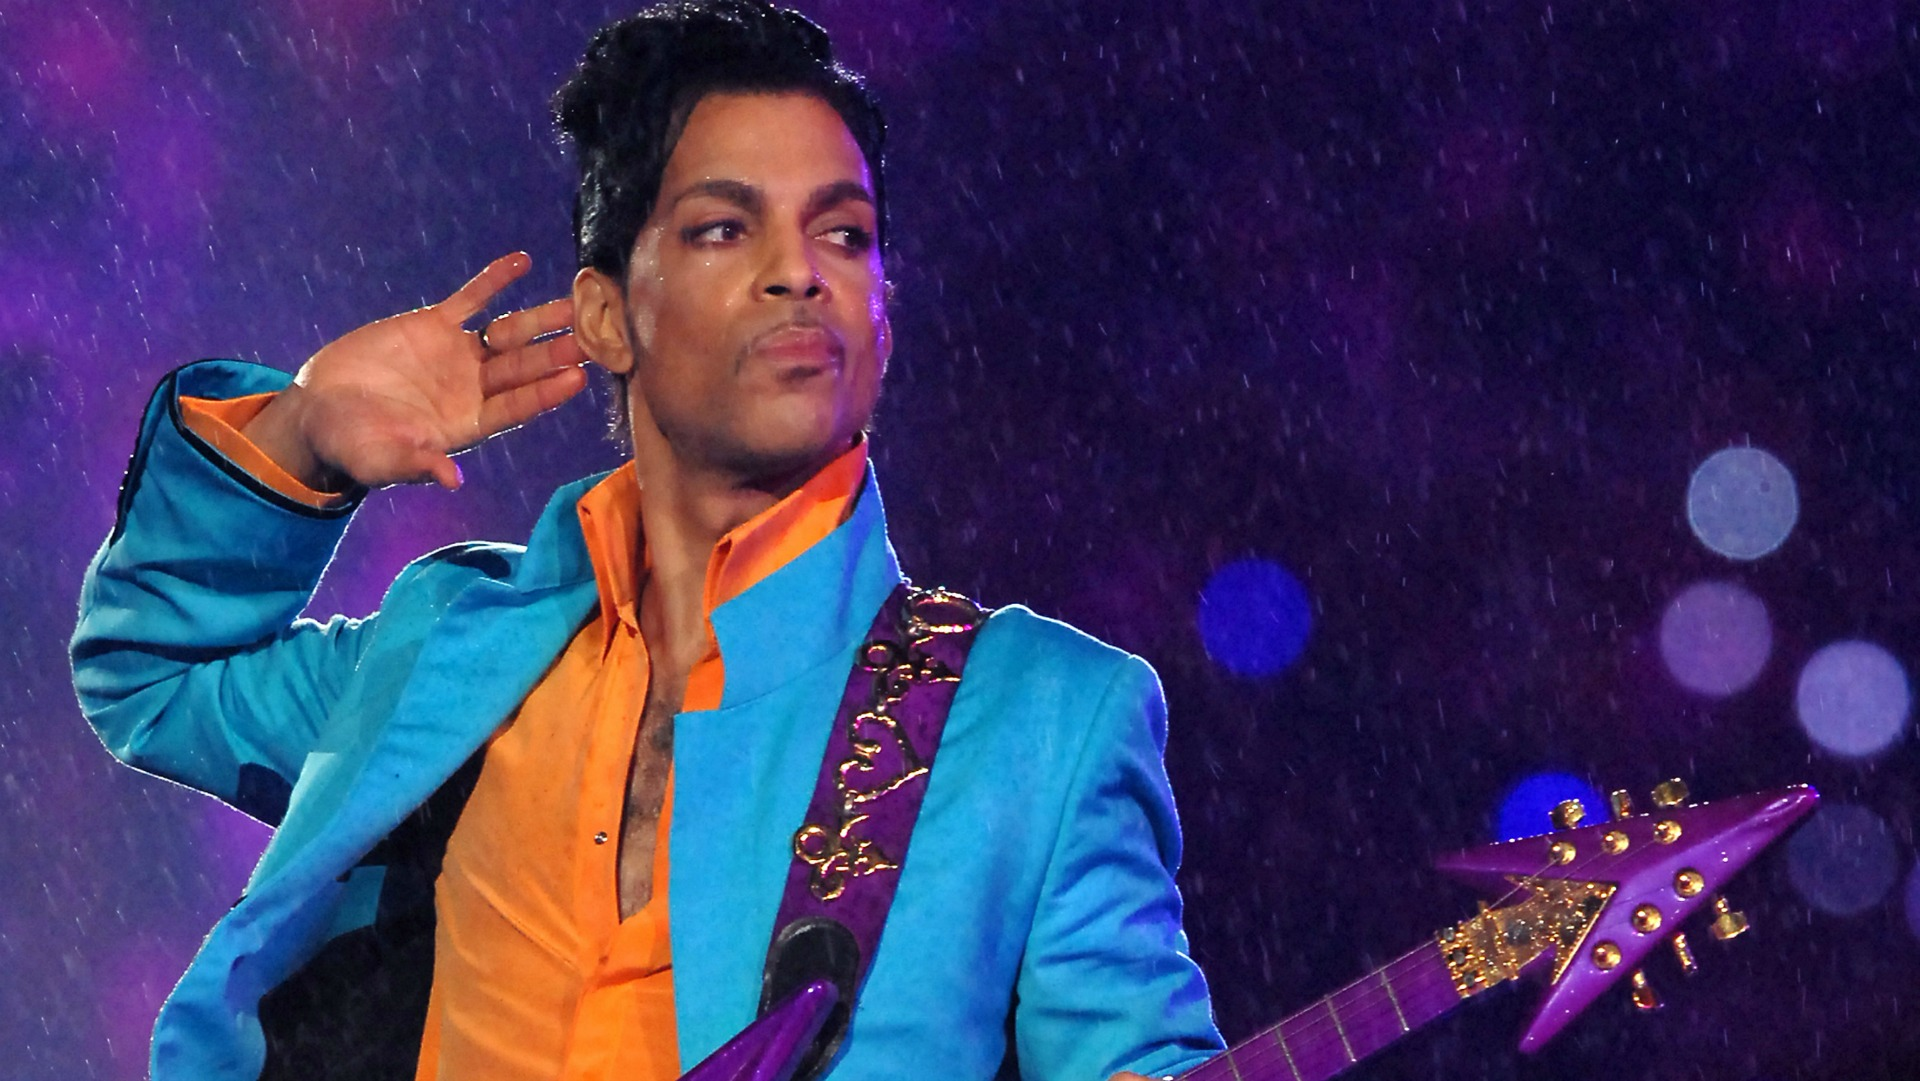 15 Epic Prince Performances You Need to Watch Right Now